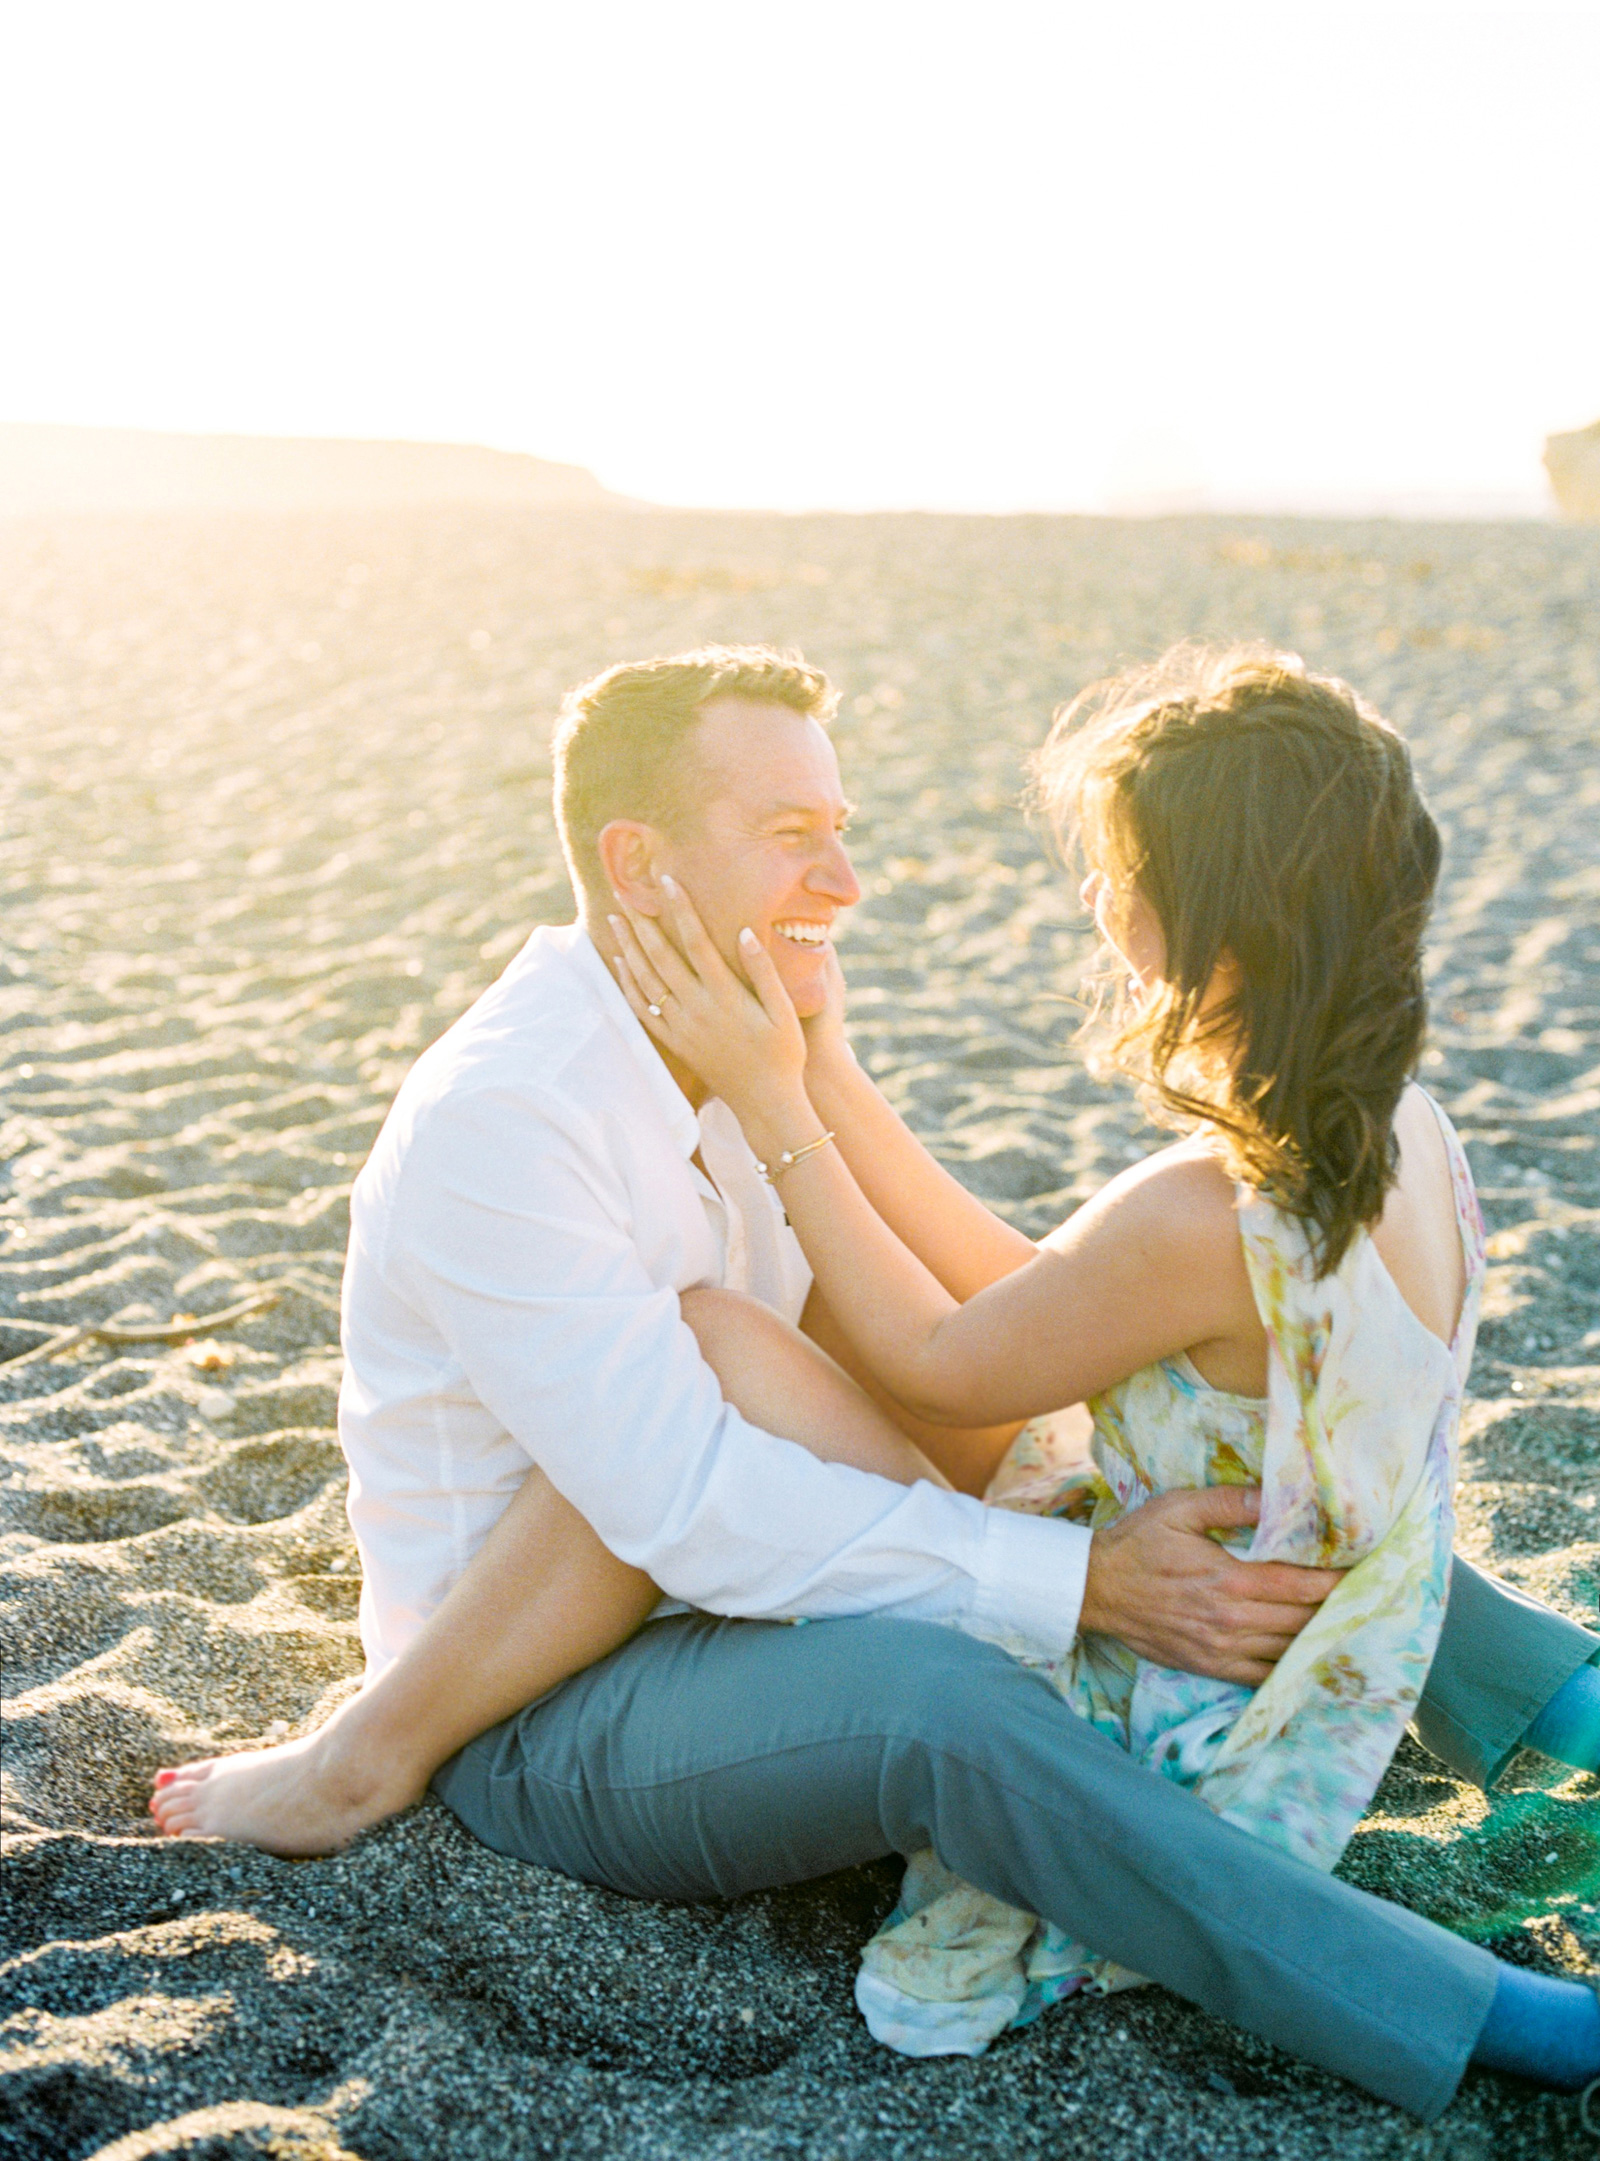 Natalie-Schutt-Photography-Malibu-Engagements-Malibu-Wedding-Beachside-Wedding-Fine-Art-Wedding-Photography-Southern-California-Brides_14.jpg